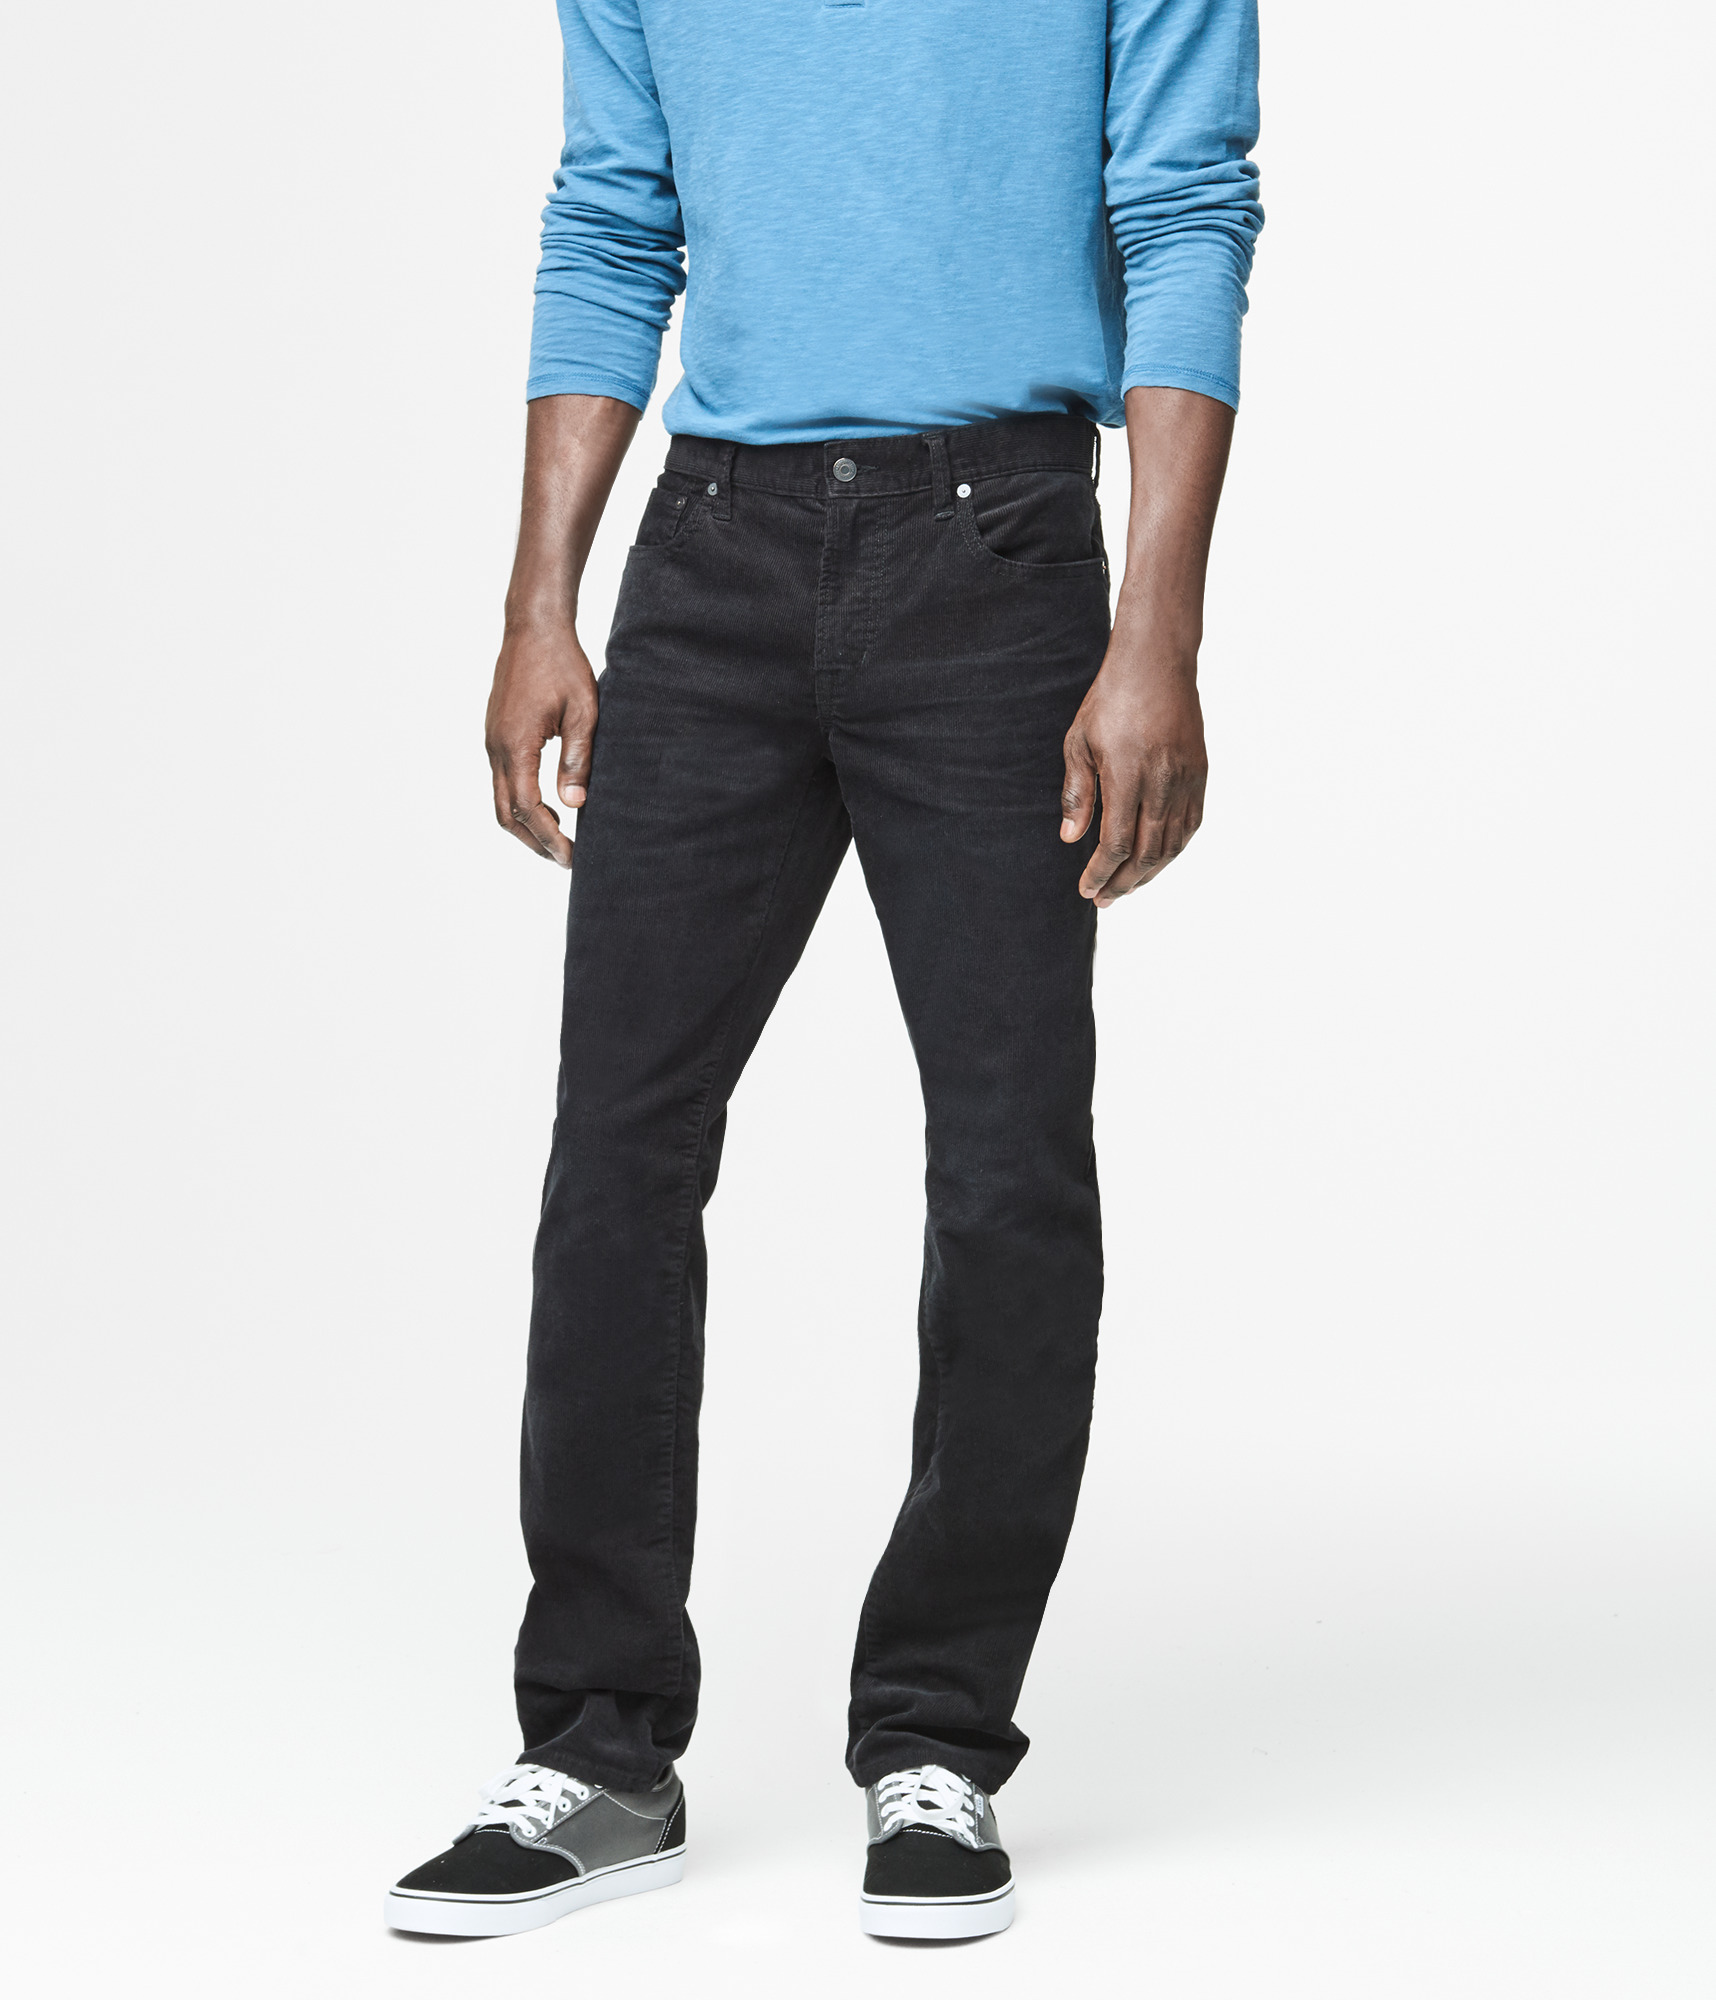 Men's Corduroy Skinny Fit 5 Pocket Jean. from $ 16 81 Prime. out of 5 stars U.S. Polo Assn. Boys' 5 Pocket Skinny Fit Twill Pant, from $ 13 99 Prime. True Religion. Women's Halle Super Skinny Crop Capri Corduroy Pants In Carmel. from $ 44 99 Prime. 4 out of 5 stars 1. Jag Jeans.